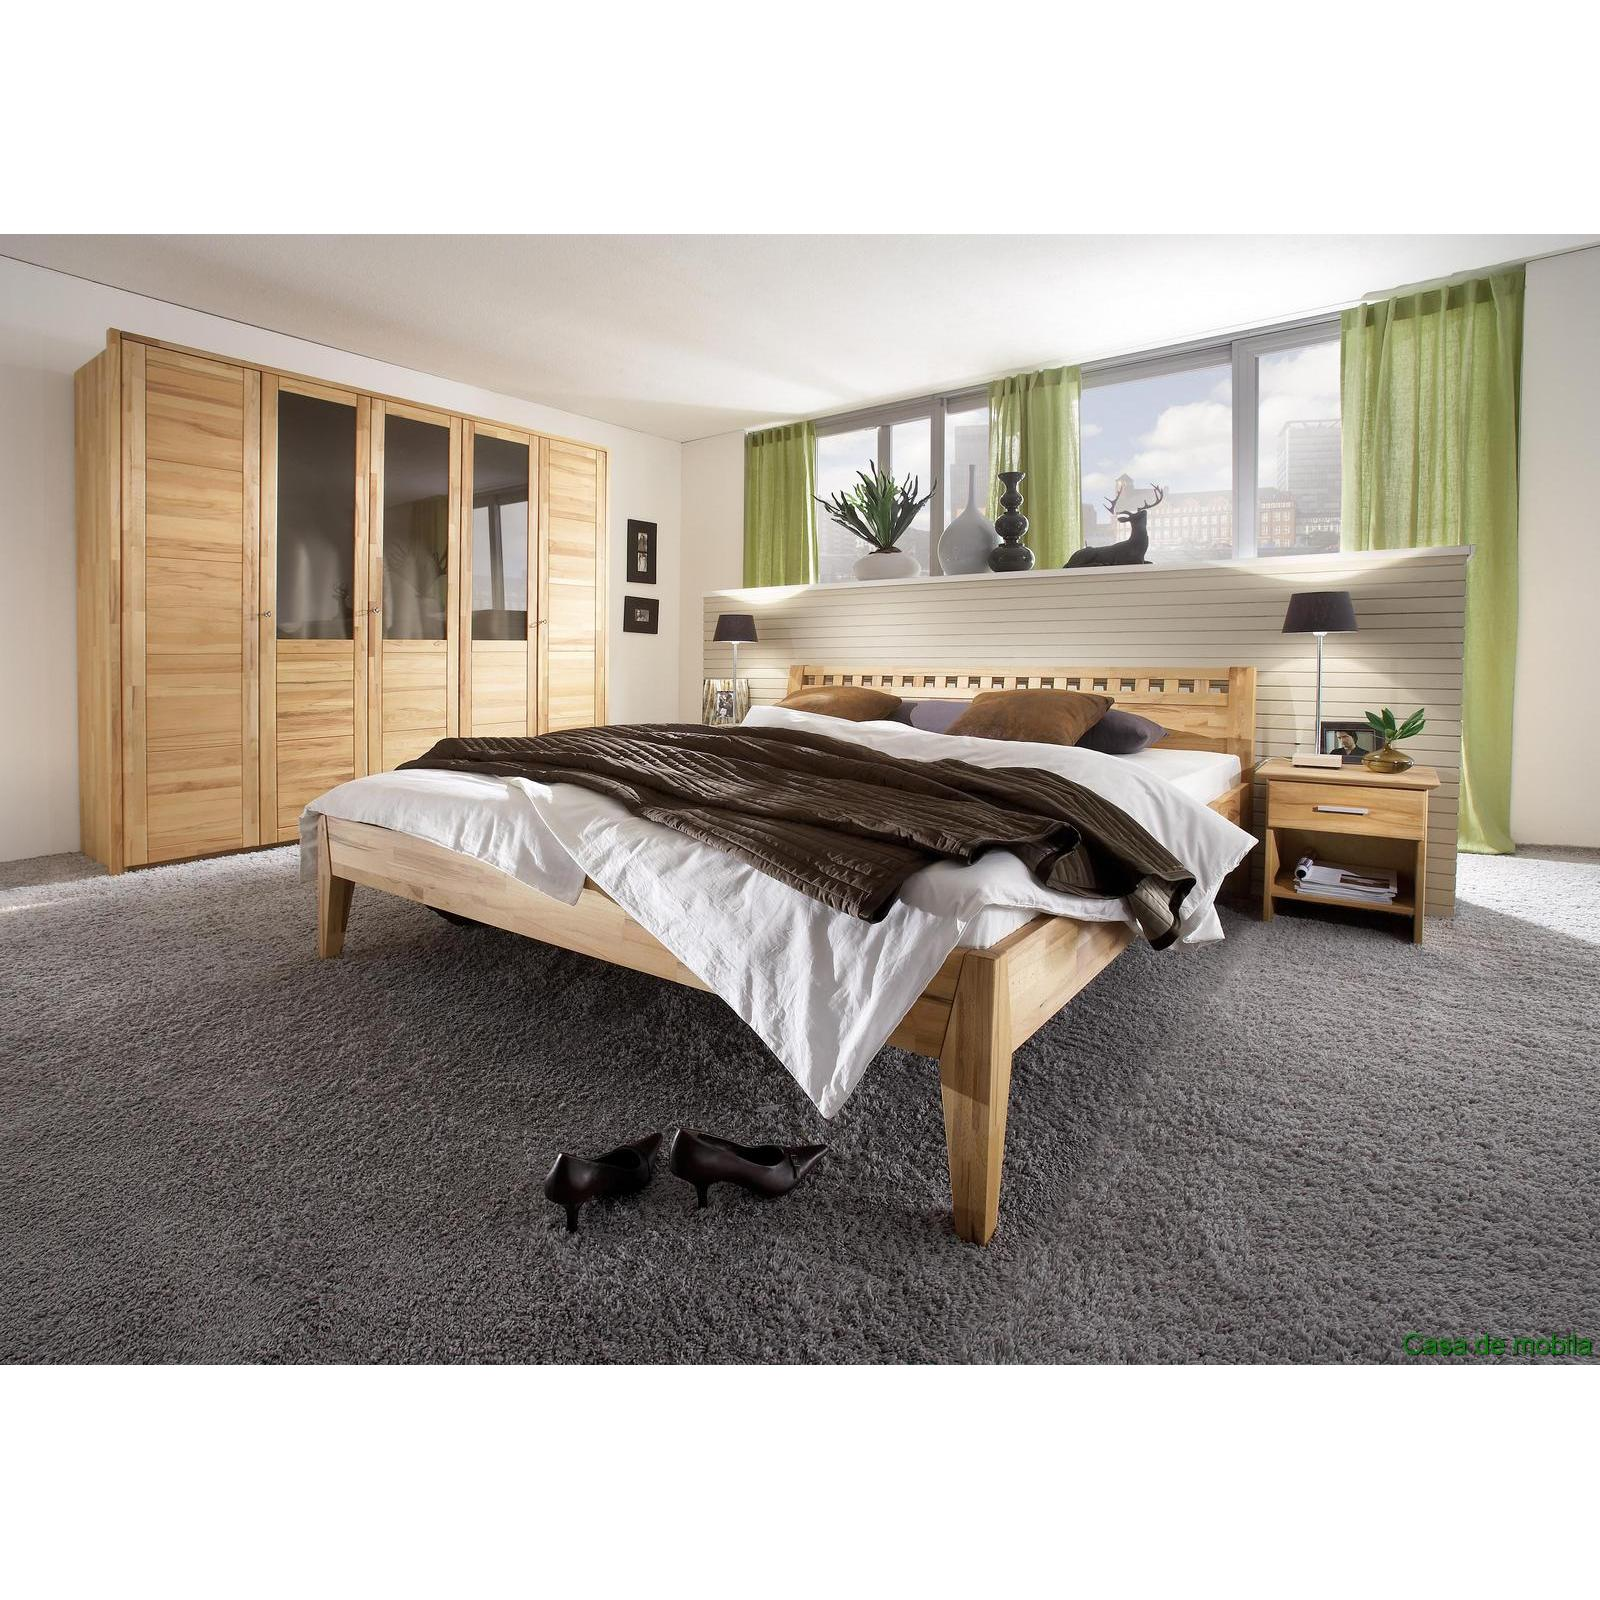 echtholz schlafzimmer komplett kernbuche massiv ge lt diana ii bett 180x200. Black Bedroom Furniture Sets. Home Design Ideas